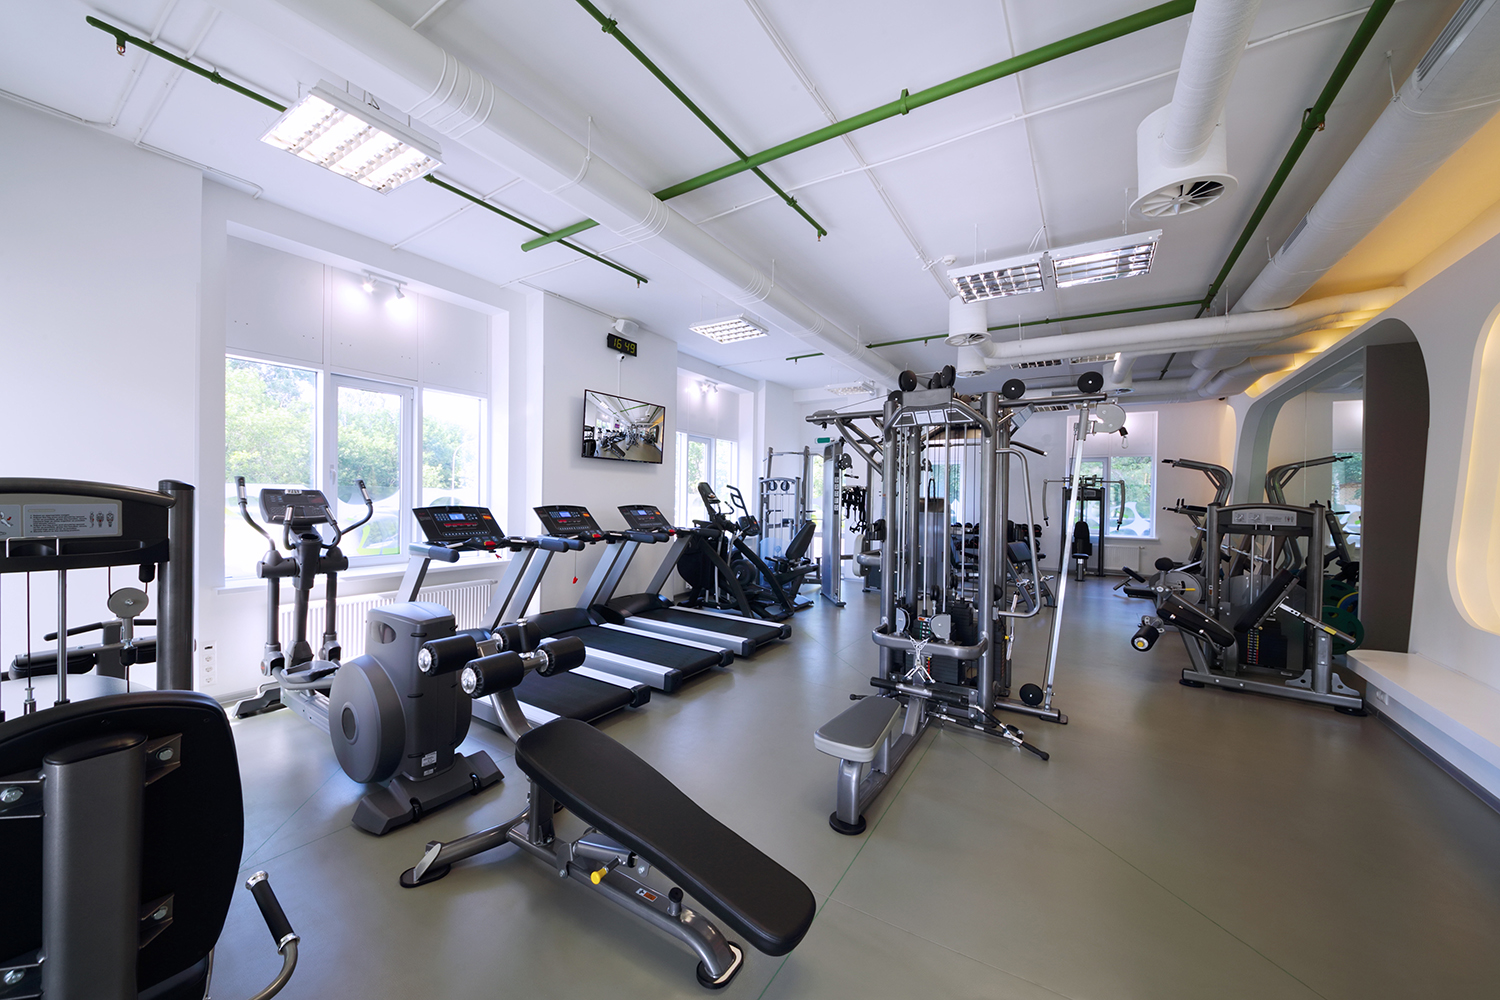 Gym interior with video screens